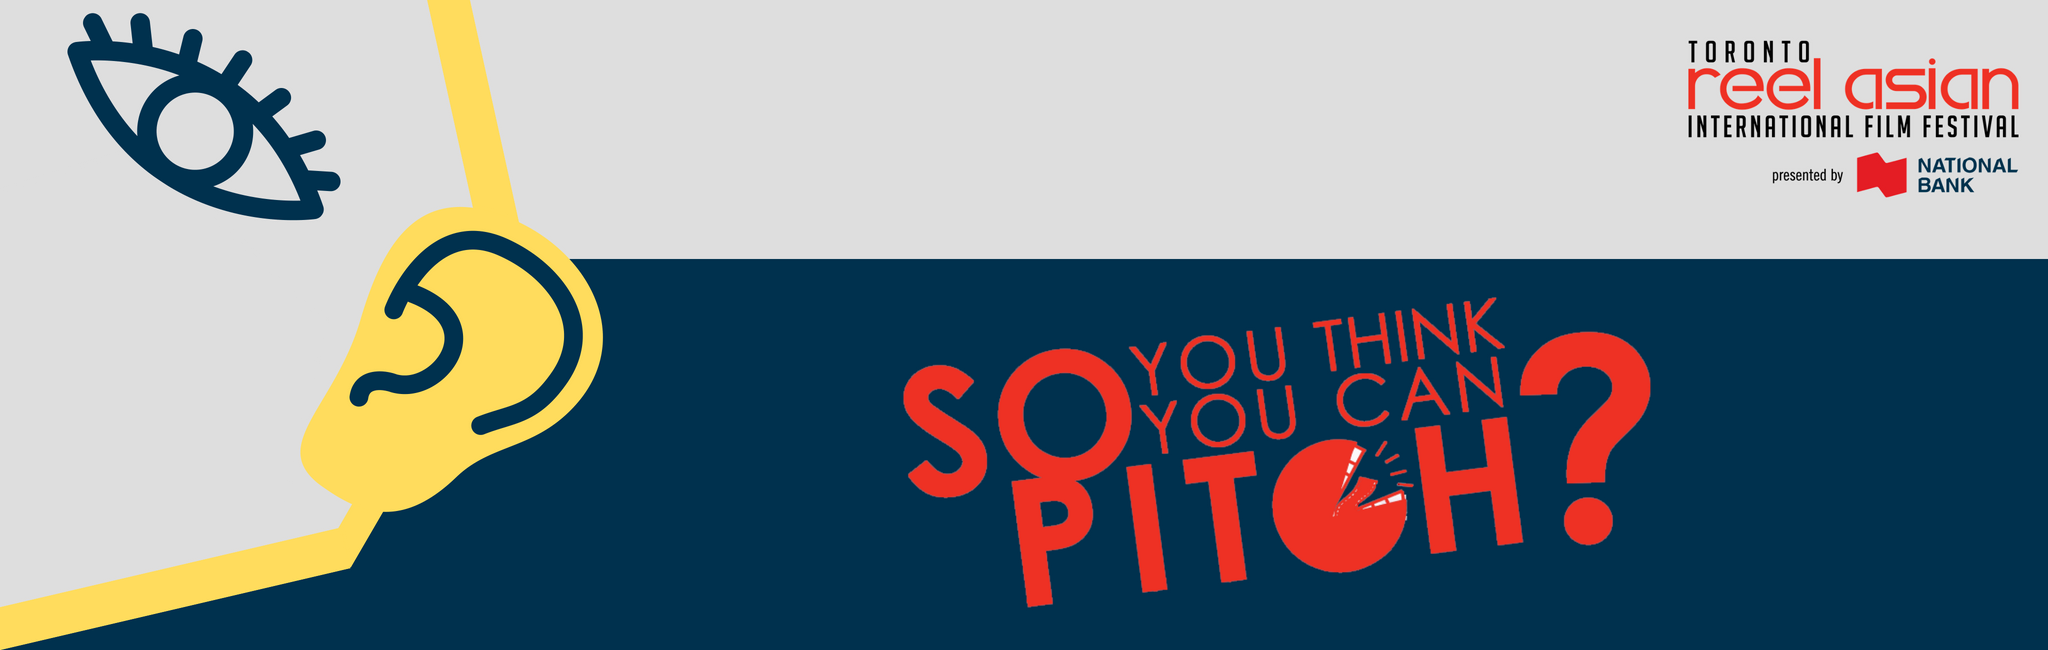 So You Think You Can Pitch?